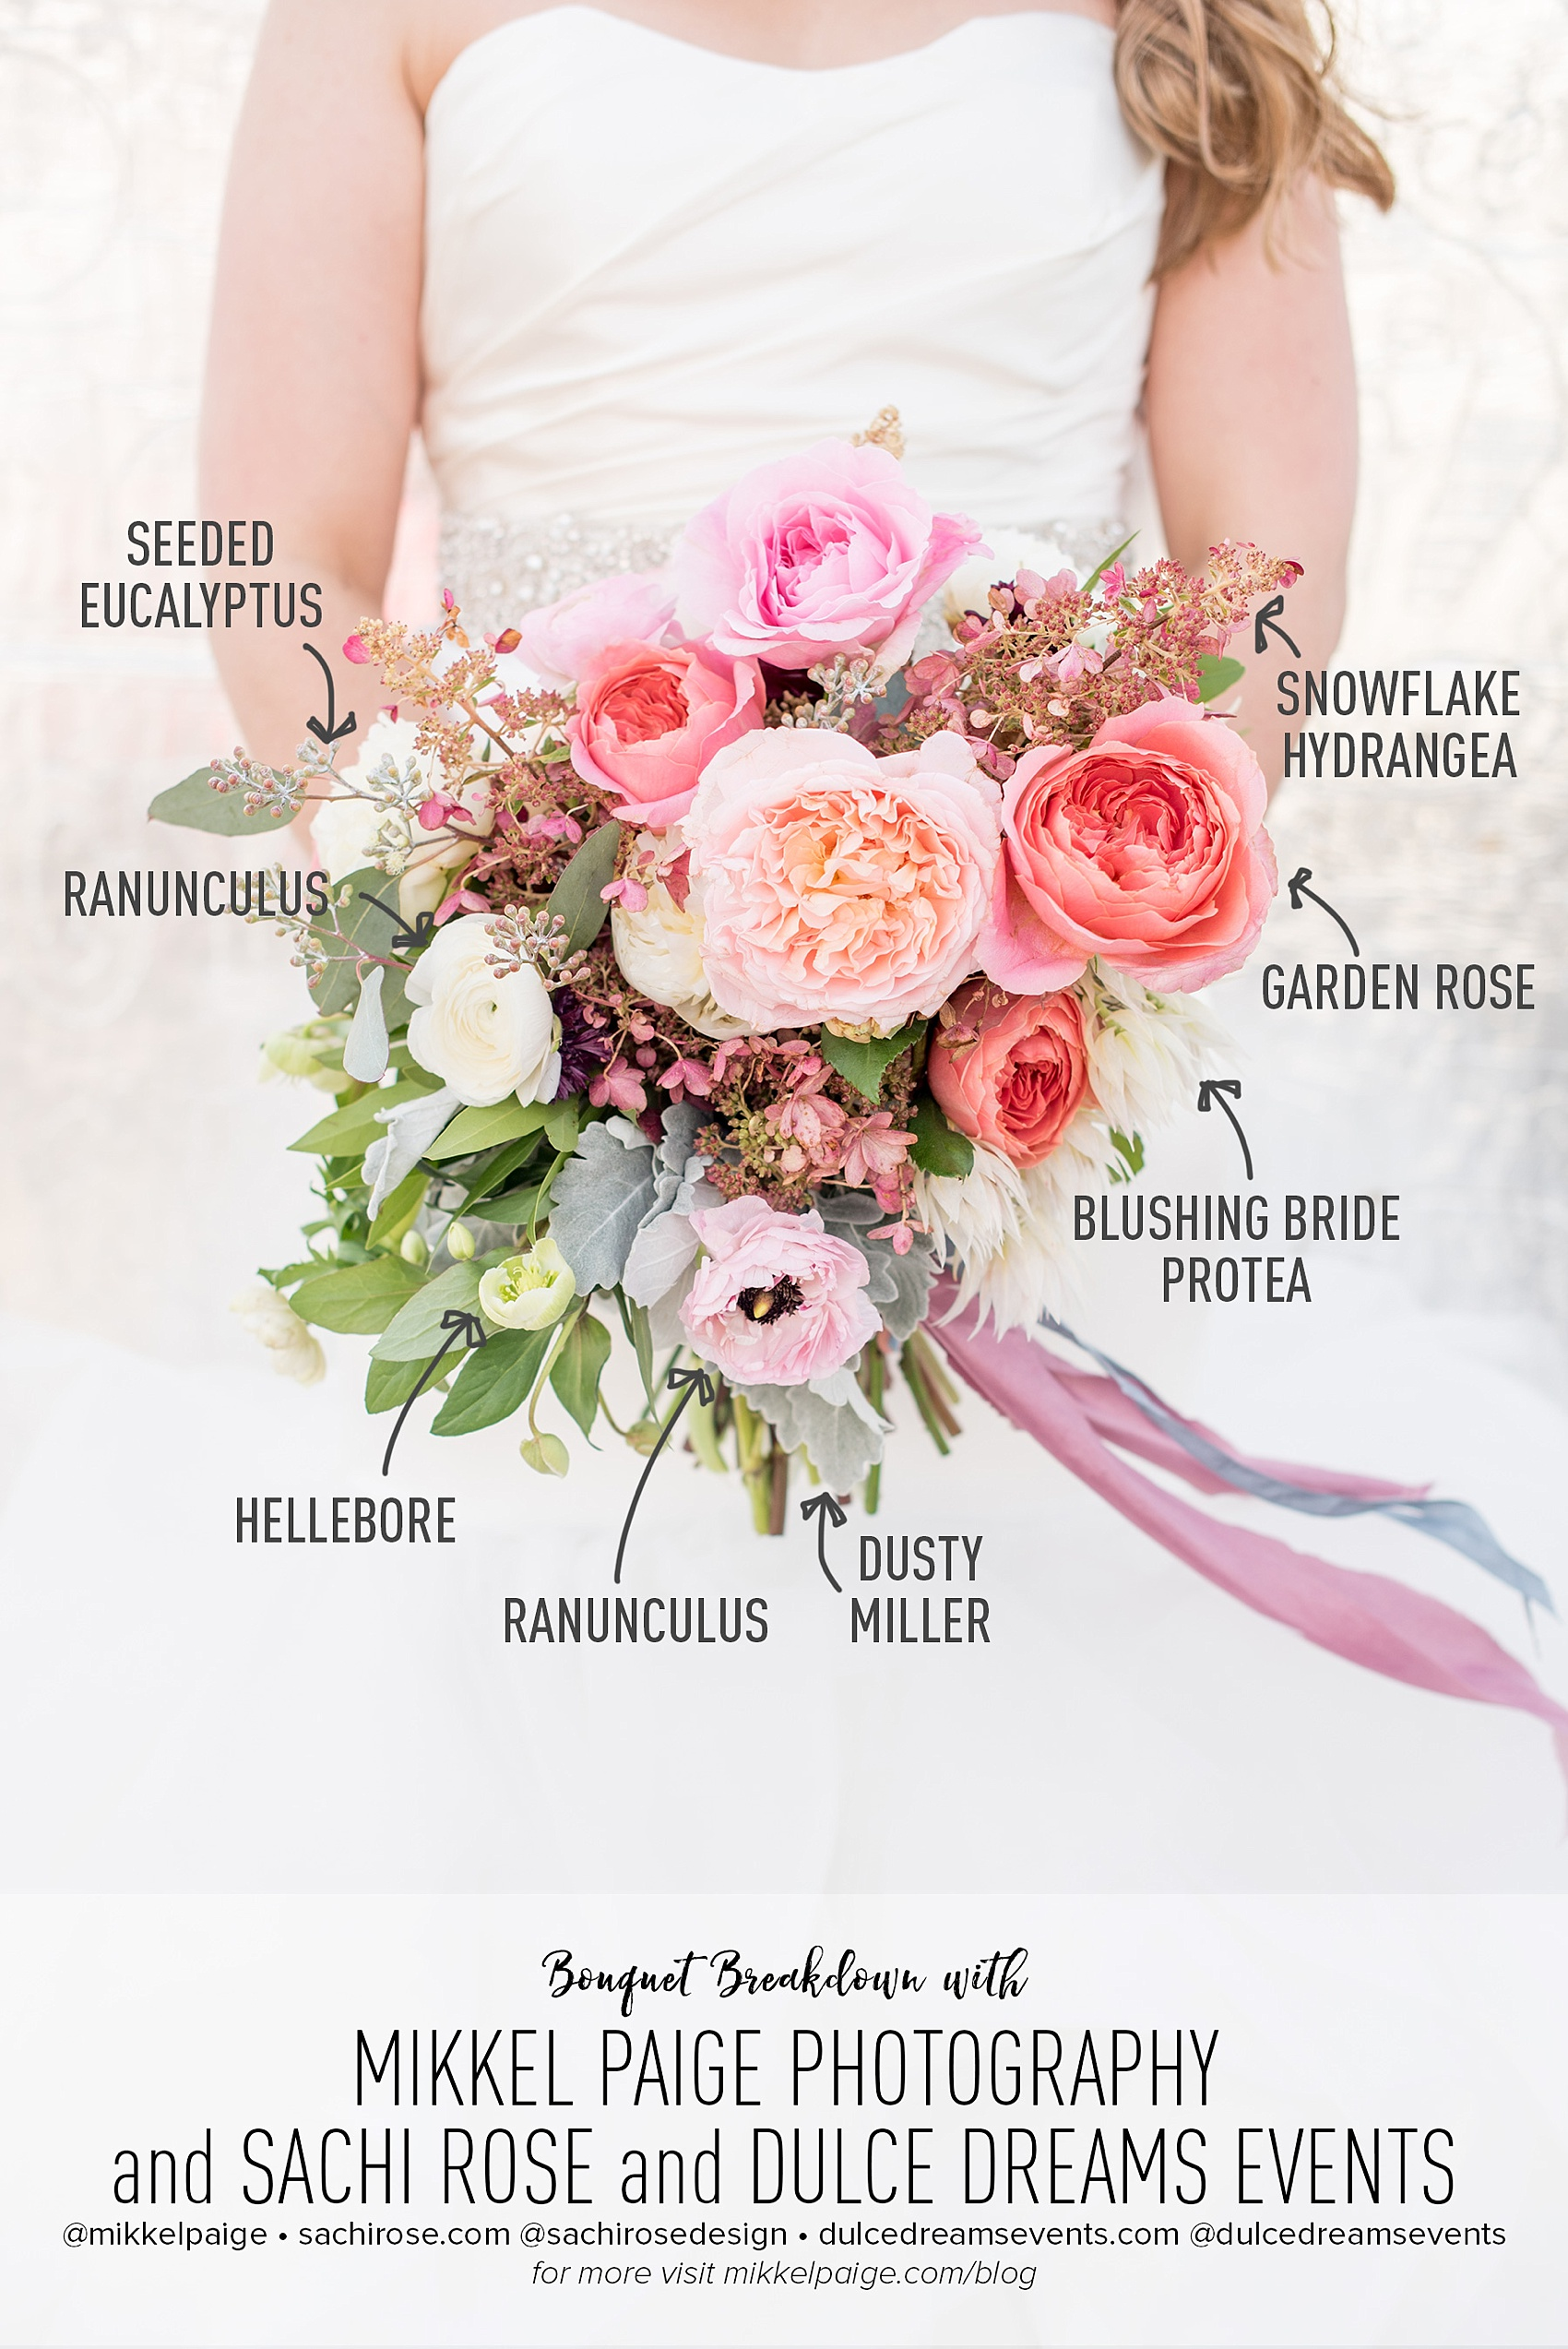 mikkel paige photography bouquet breakdown of bridal flowers with sachi rose pink hues with snowflake - Garden Rose And Hydrangea Bouquet